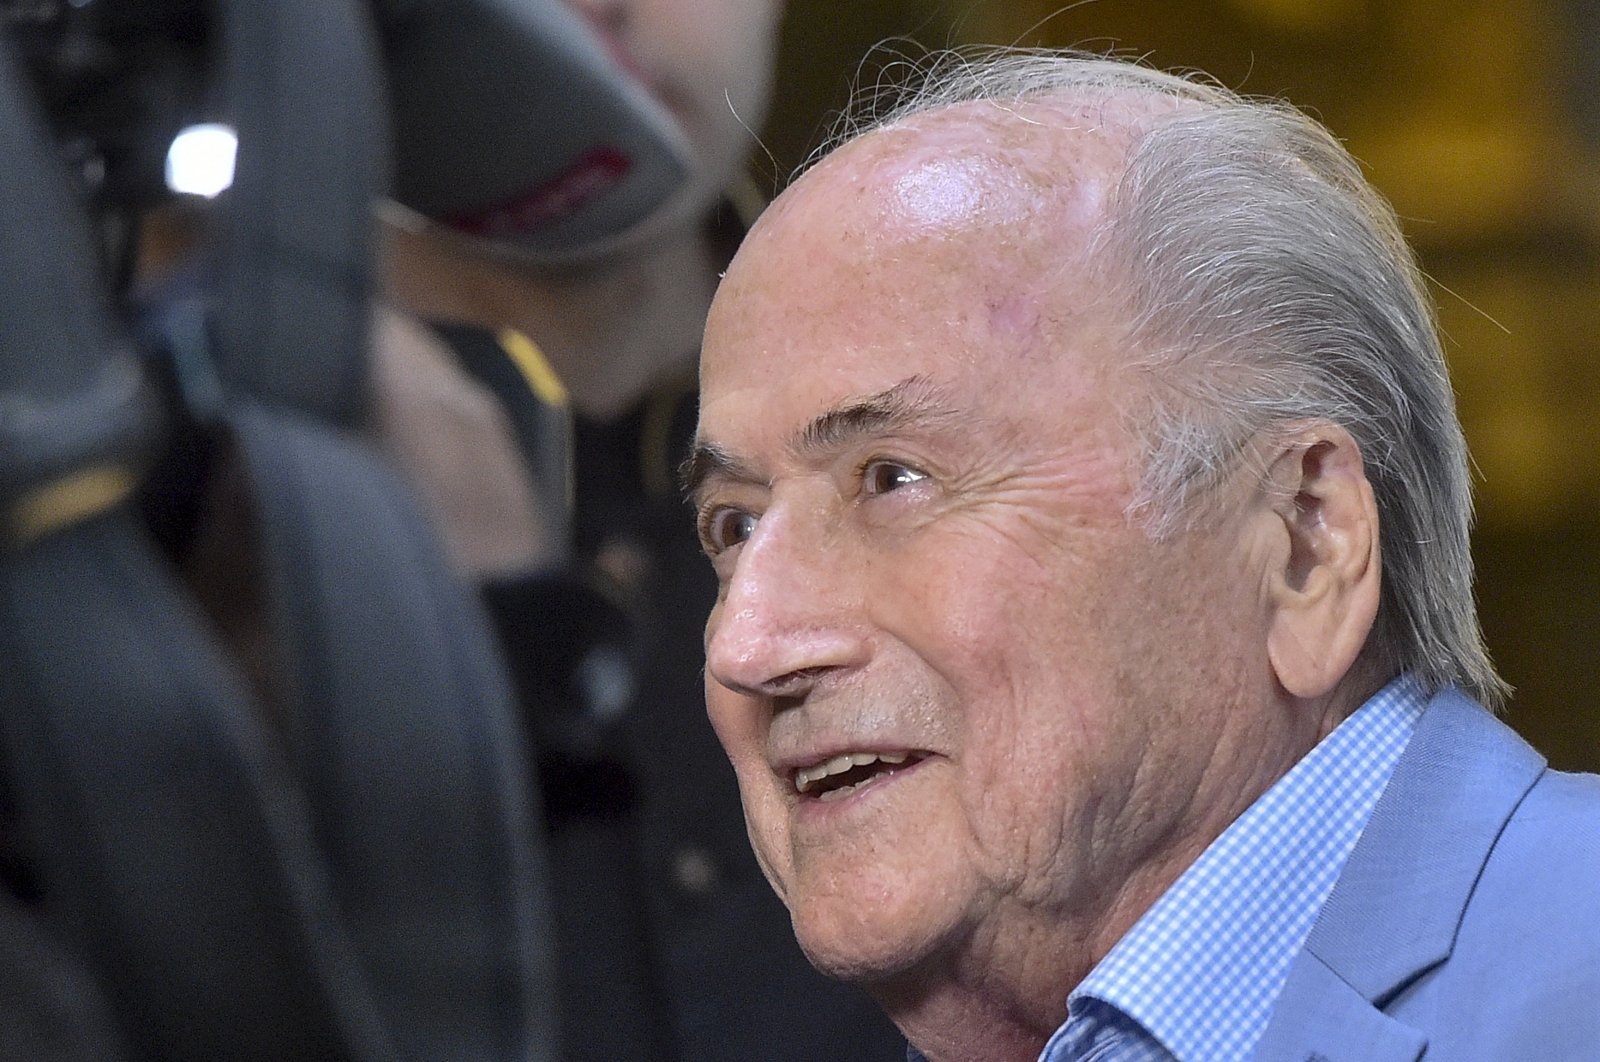 In this Tuesday, June 19, 2018 file photo, former FIFA President Joseph Blatter arrives at a hotel in Moscow, Russia. Five years into a sprawling investigation of soccer corruption, the first courtroom trial in Switzerland is due to begin Monday, March 9, 2020 in a 2006 World Cup fraud case. (AP Photo)